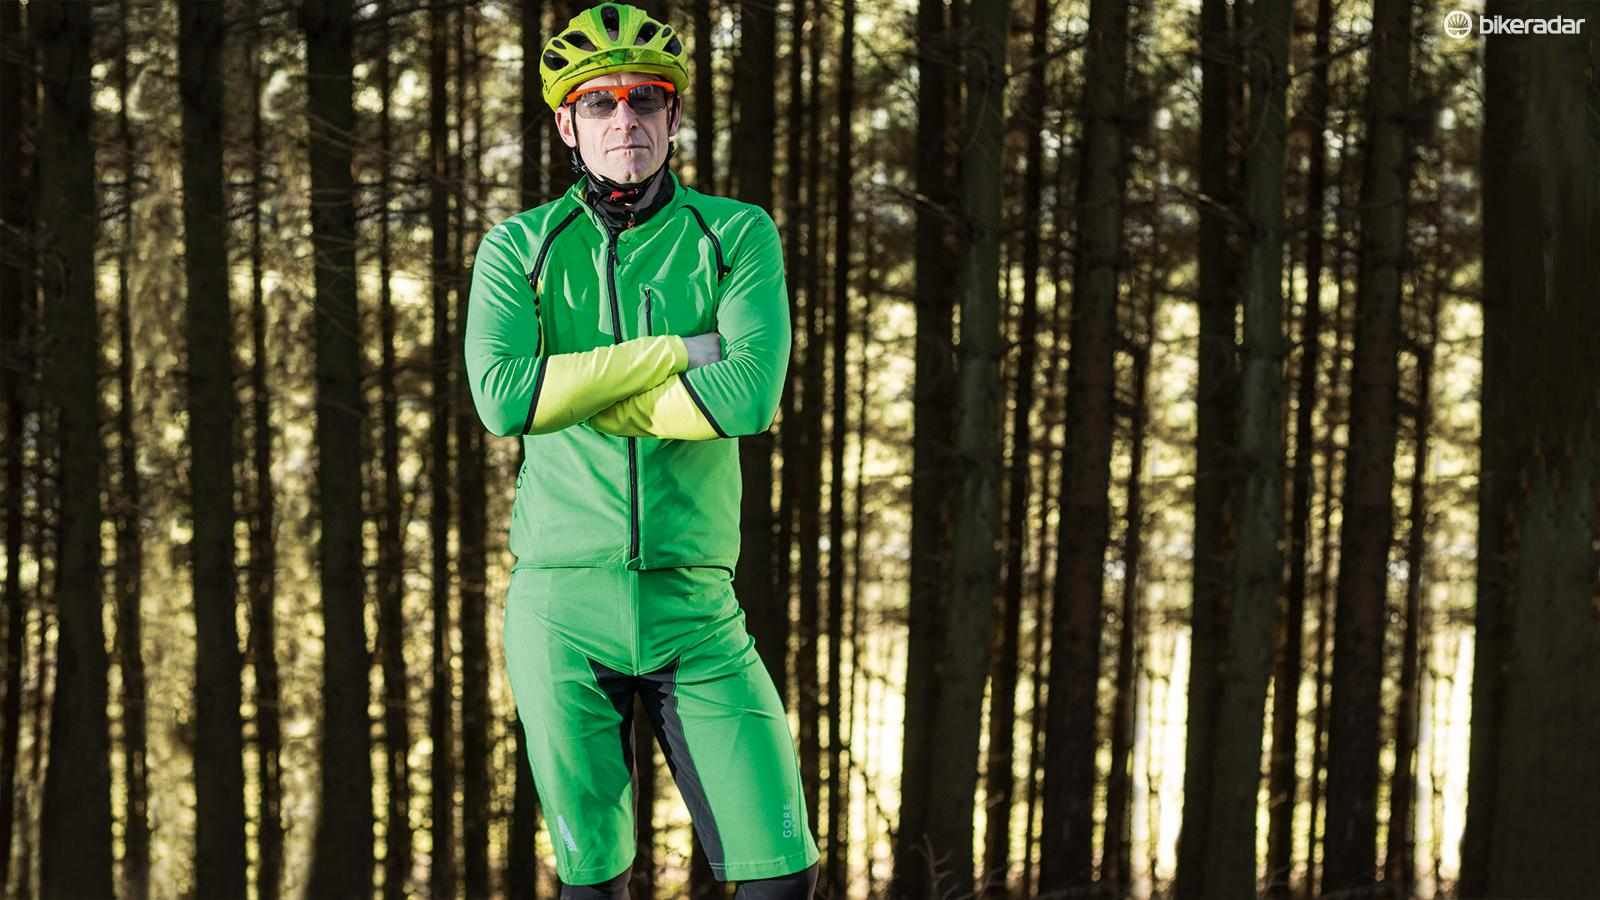 Gore's Alp-X Pro jersey and shorts are unforgivingly cut but perform impressively